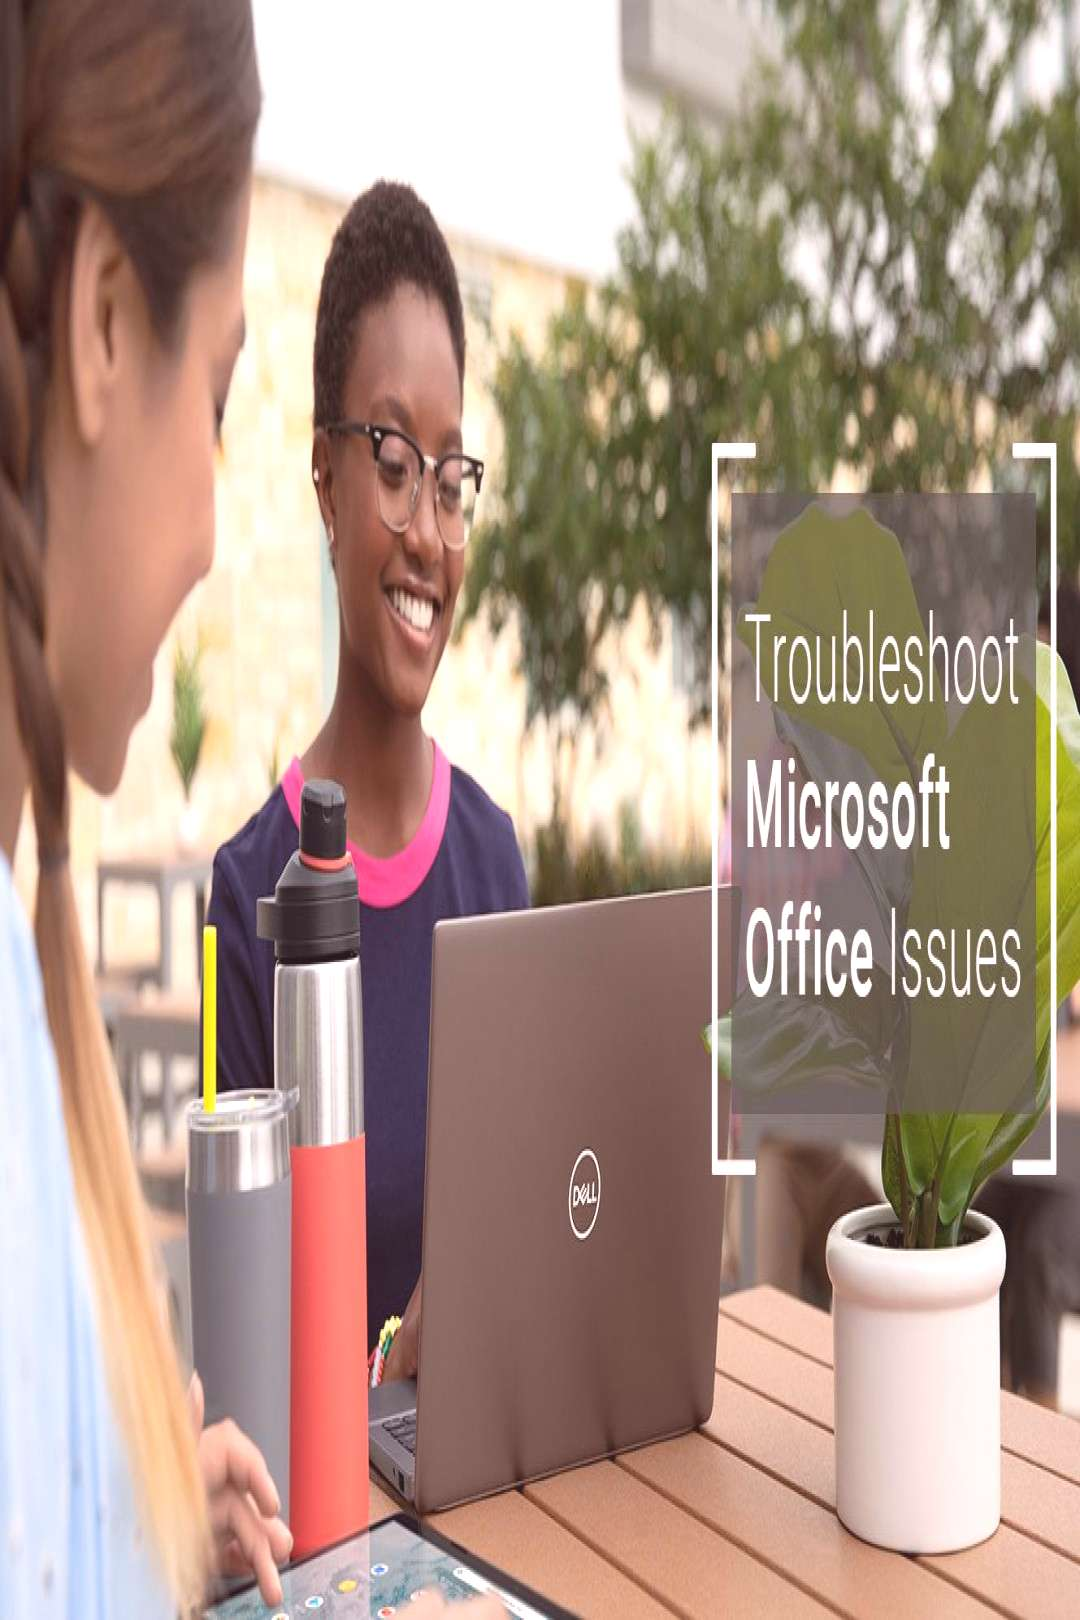 Microsoft Office Issues ?️ Having problems with Help is available online.